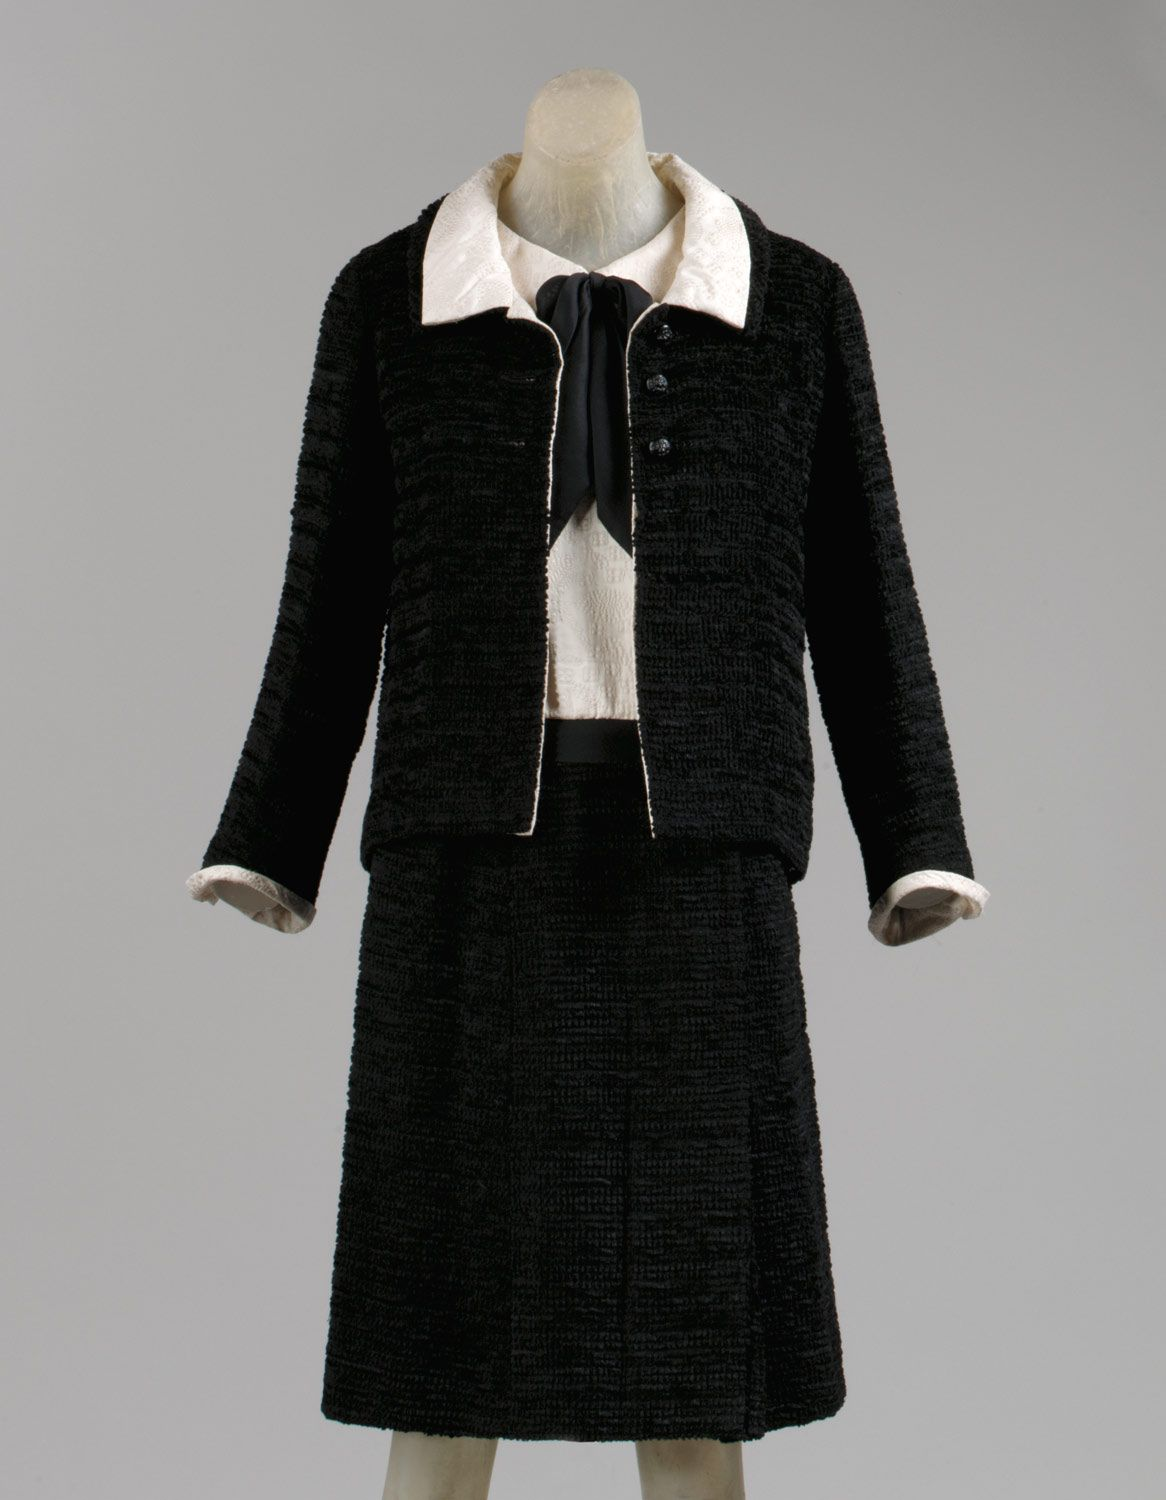 c31a936a8 Cocktail ensemble in 2019 | Life in the 1930s-60s | Chanel outfit ...